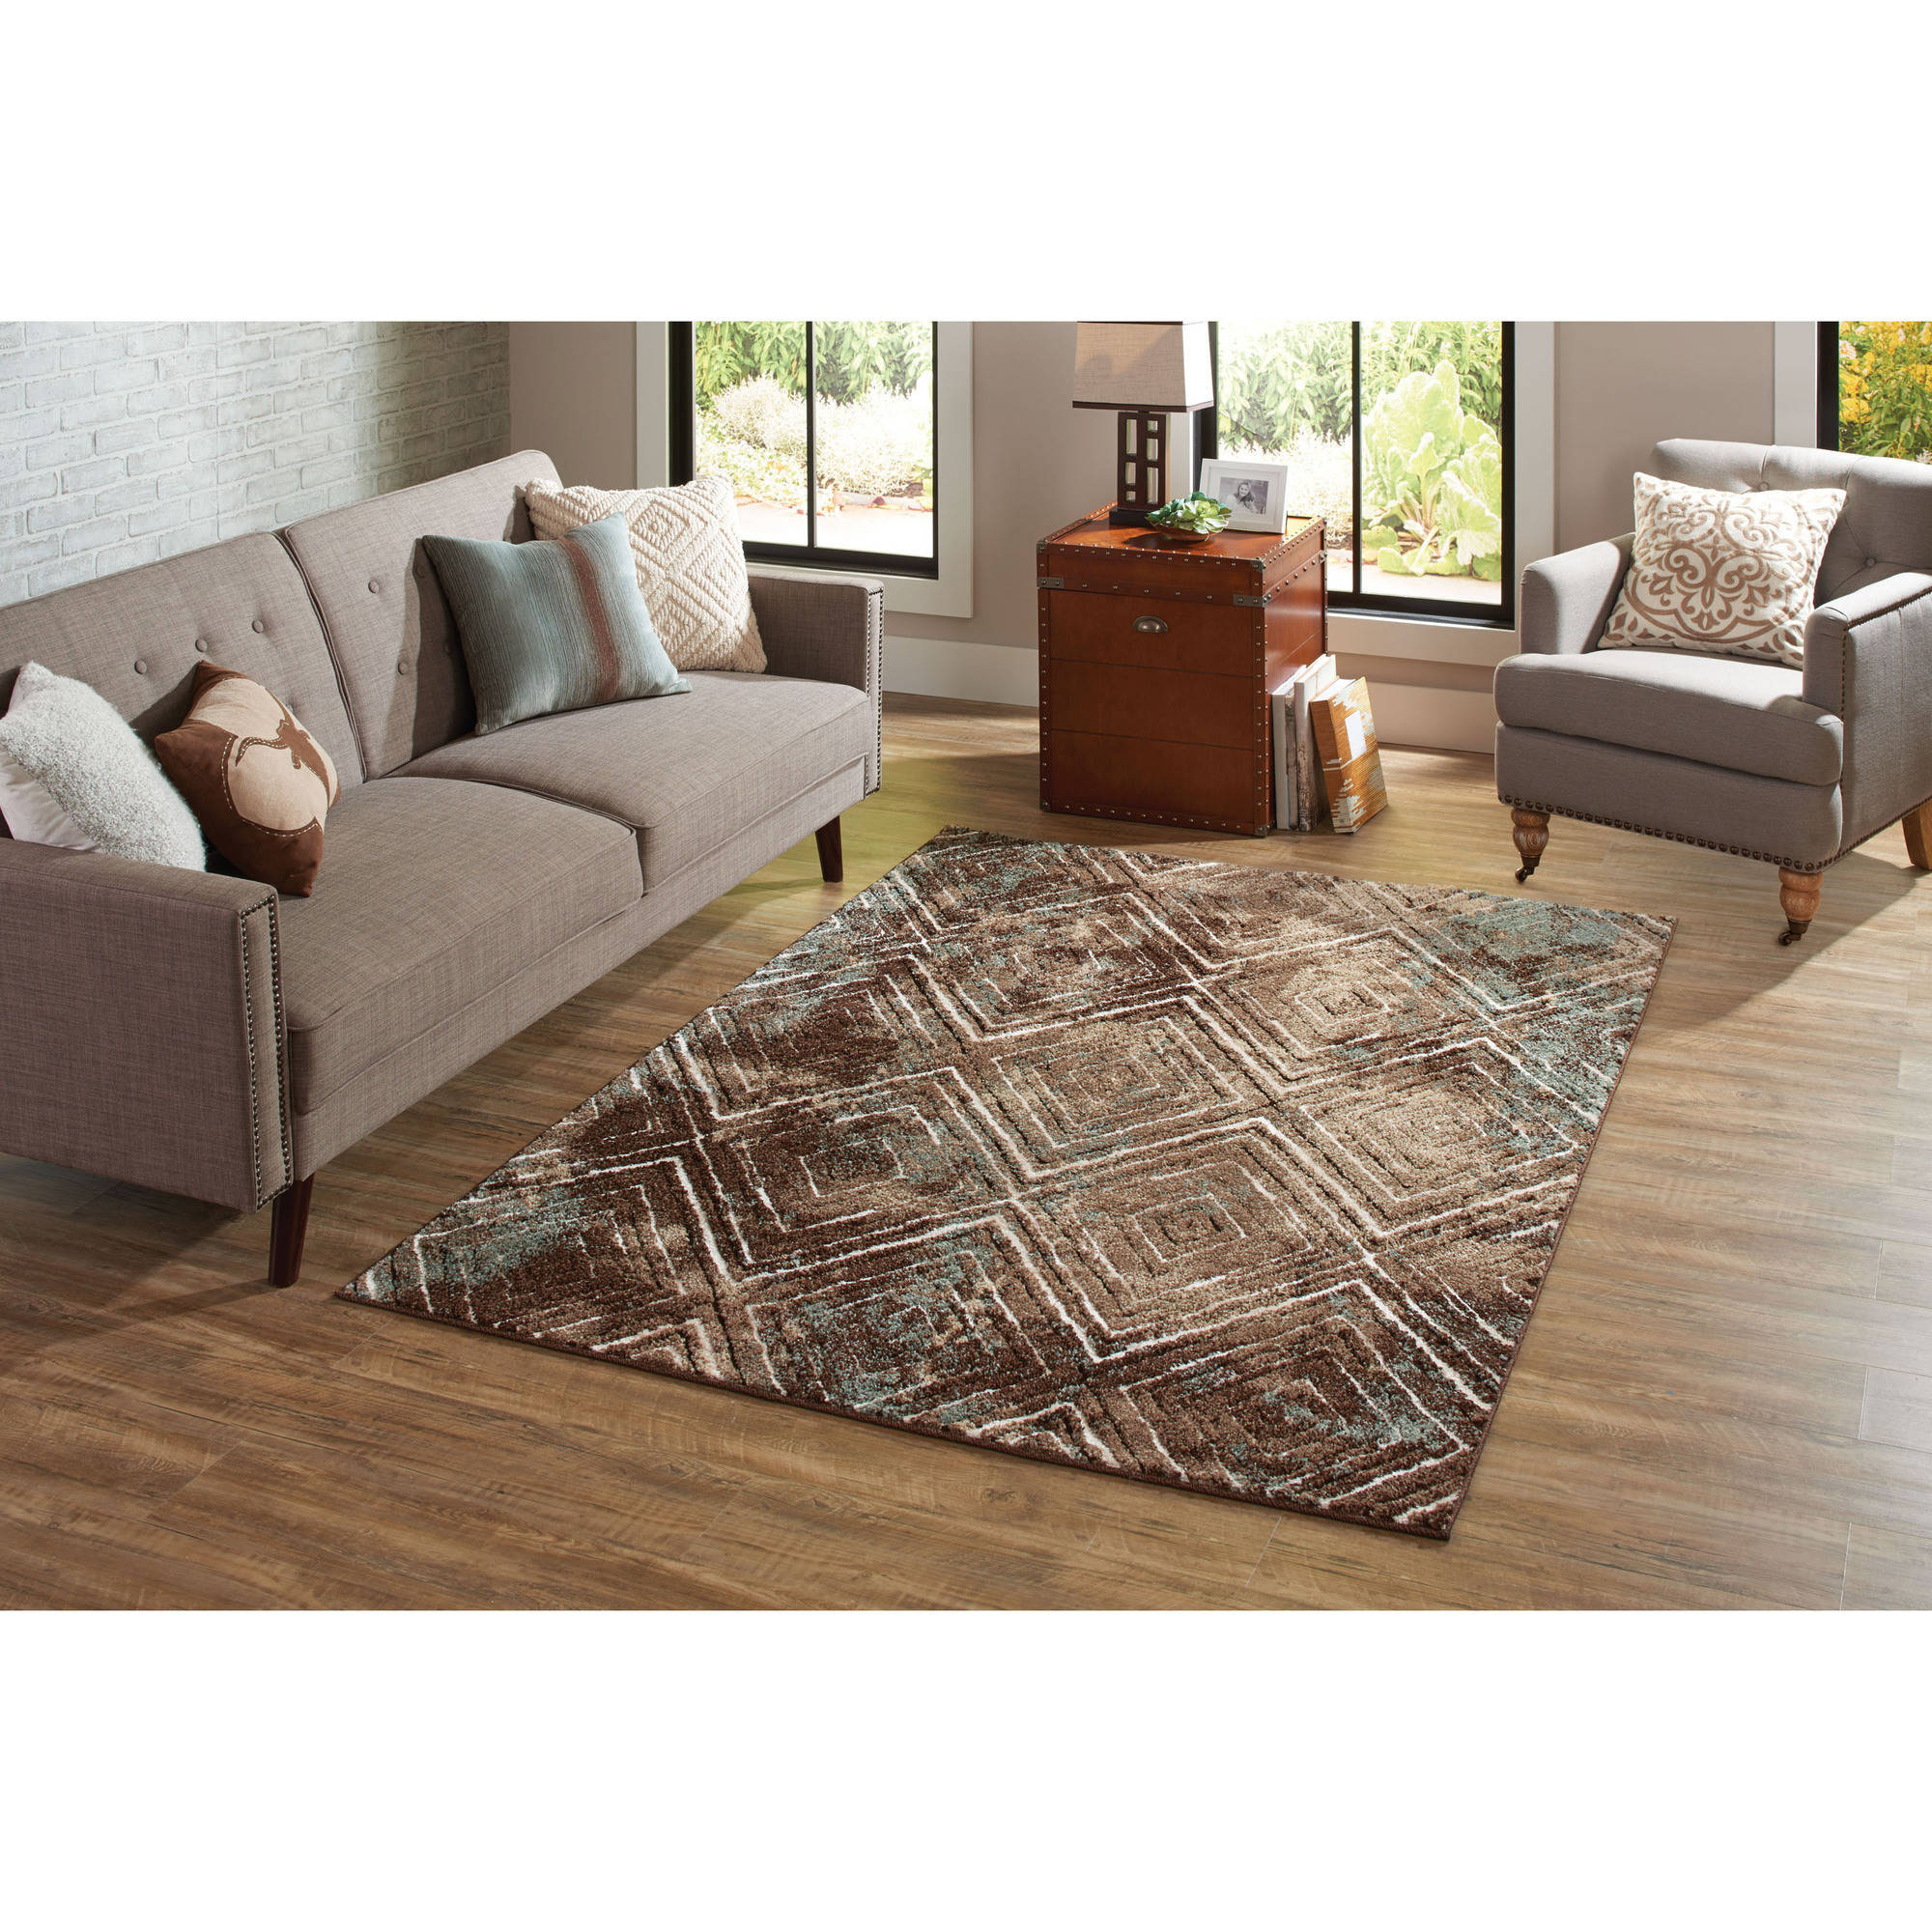 Better Homes and Garden Brown Diamond Polypropylene and Polyester Pile Rug